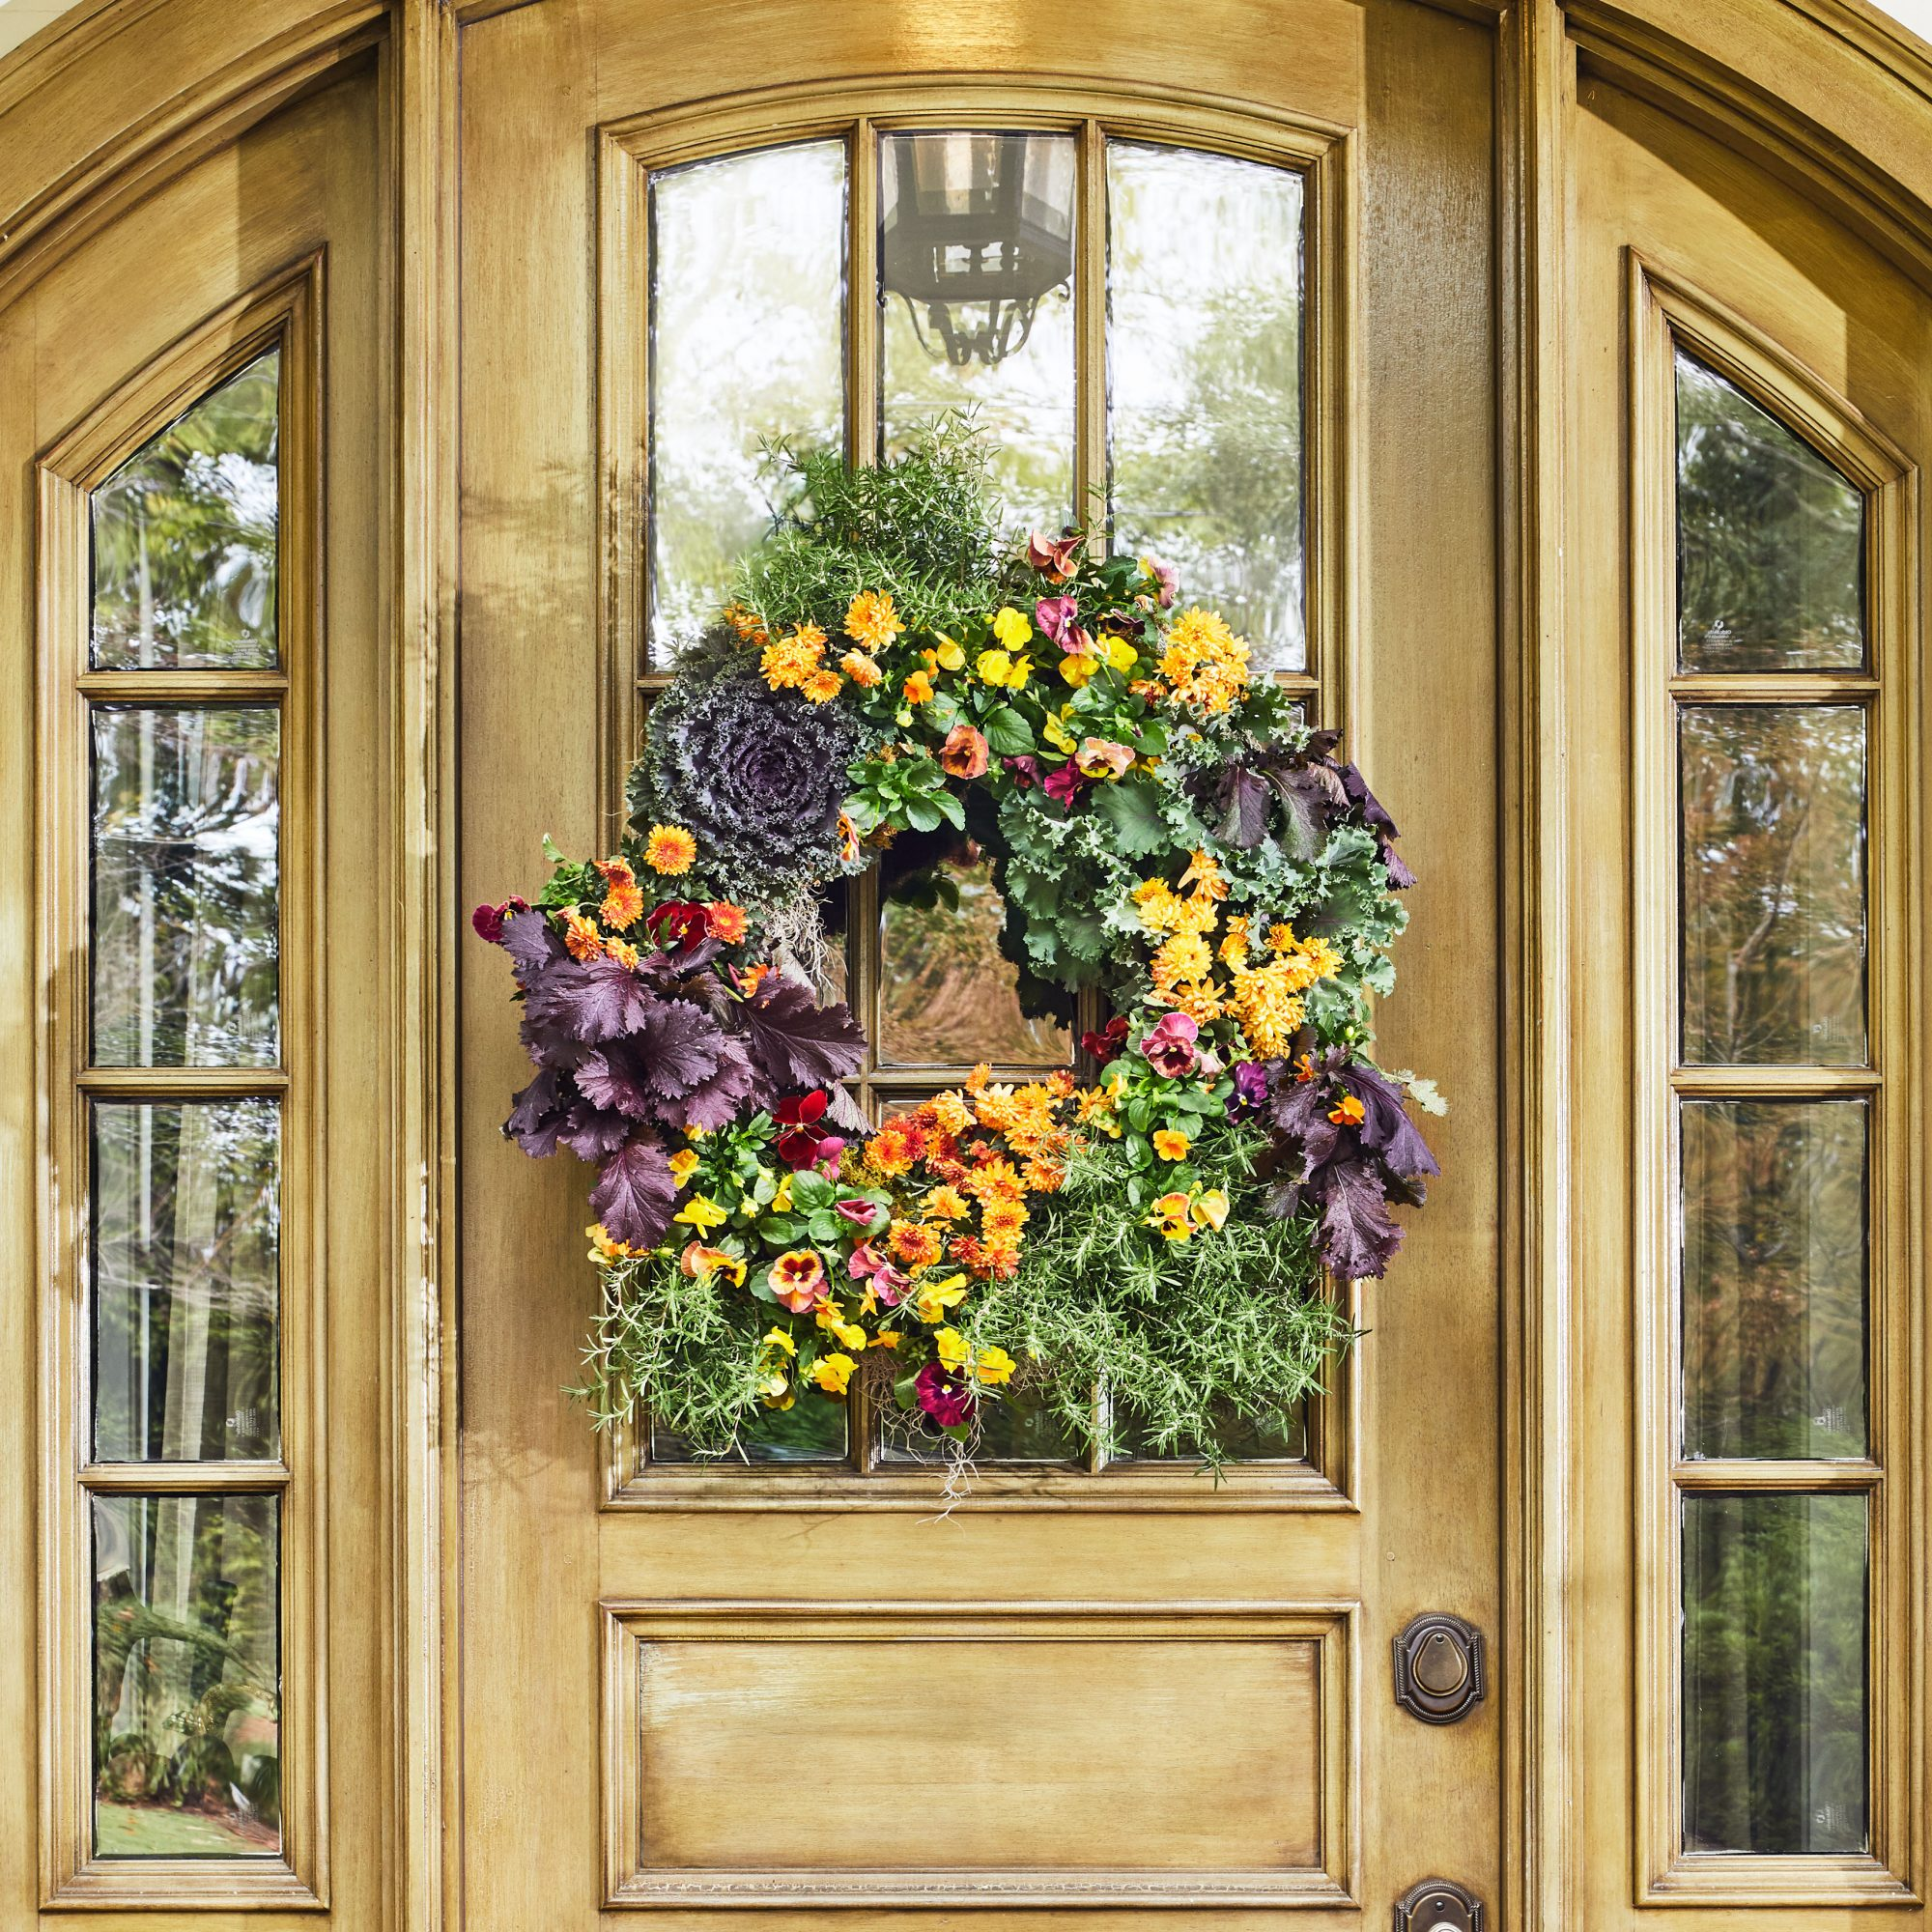 Fall Living Wreath with Flowering Kale, Pansies, and Violas